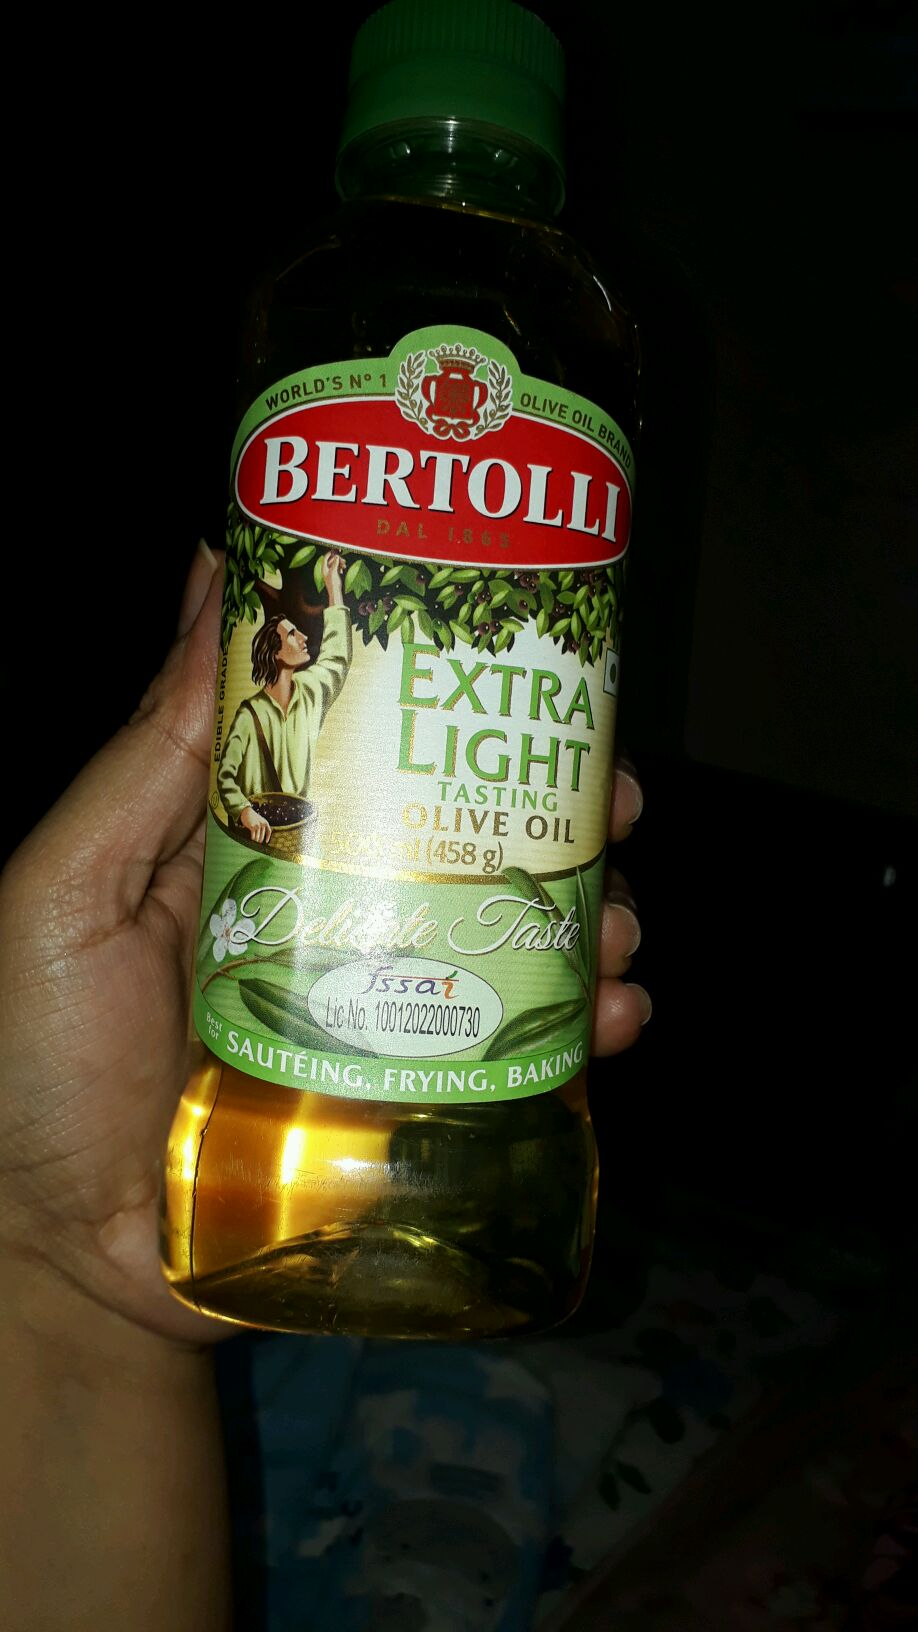 i have heared about bertolli olive oil is gud for massage nd i